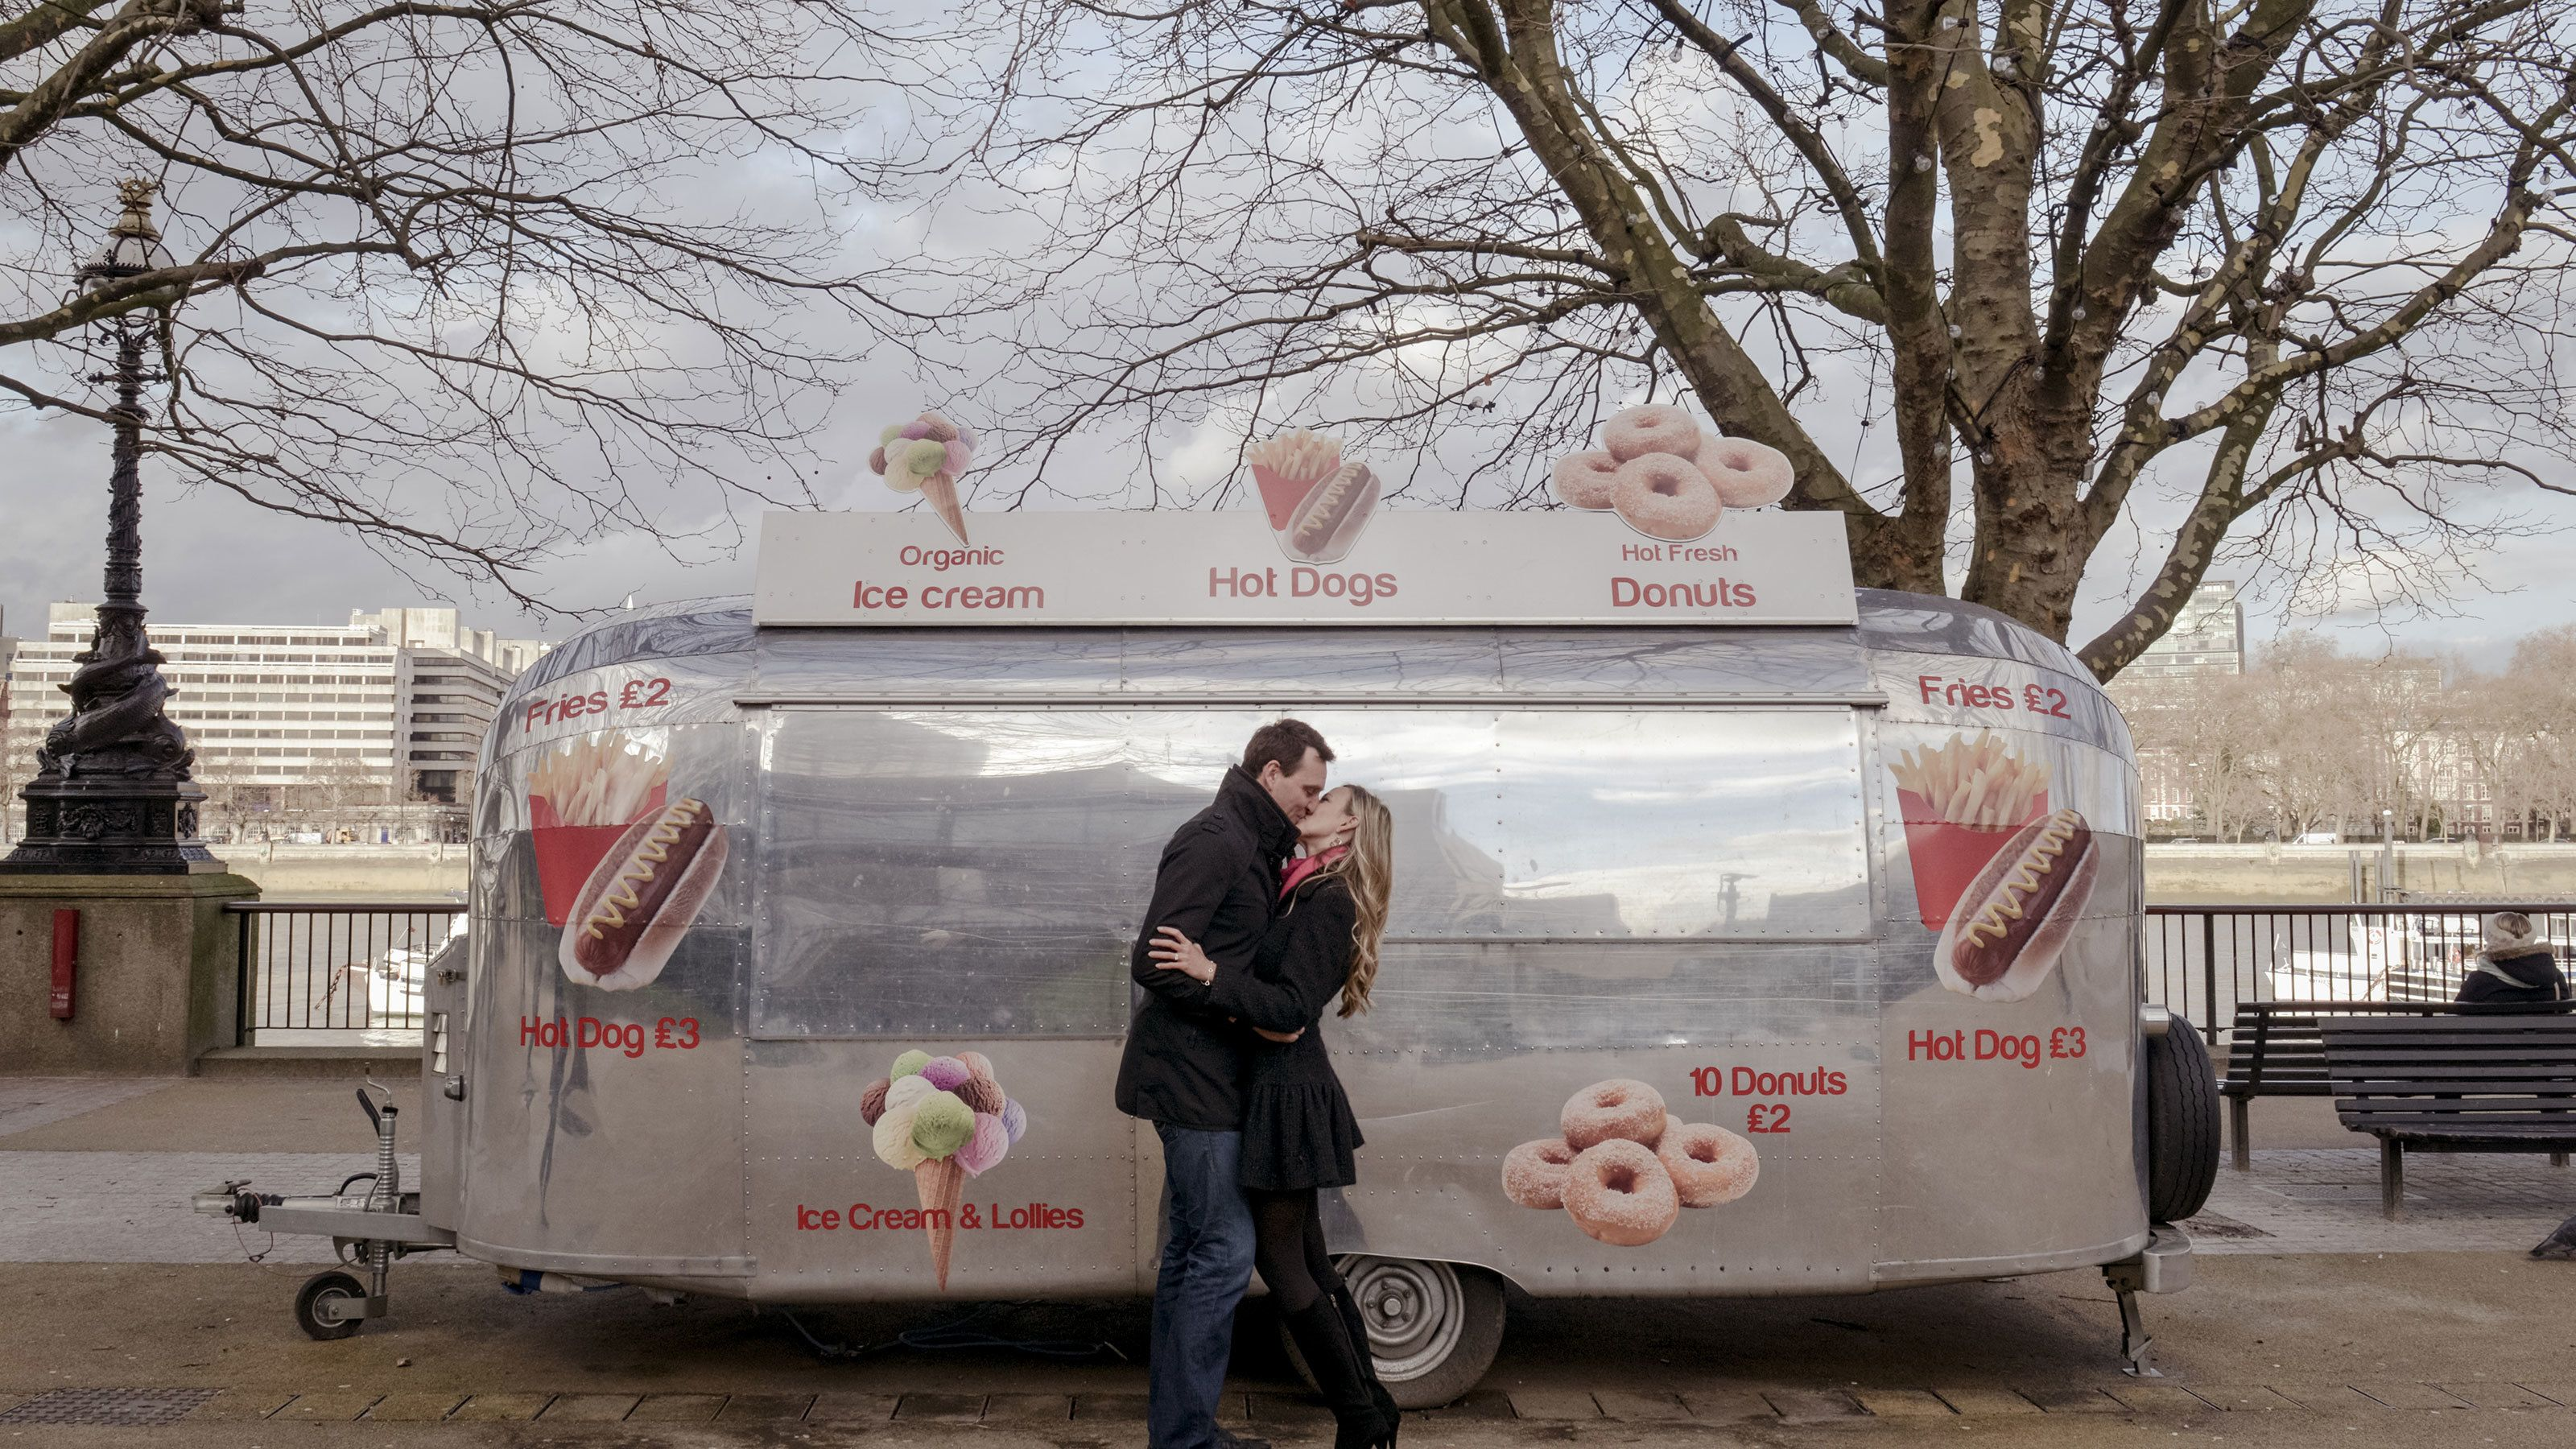 Couple kissing in front of a food truck in London